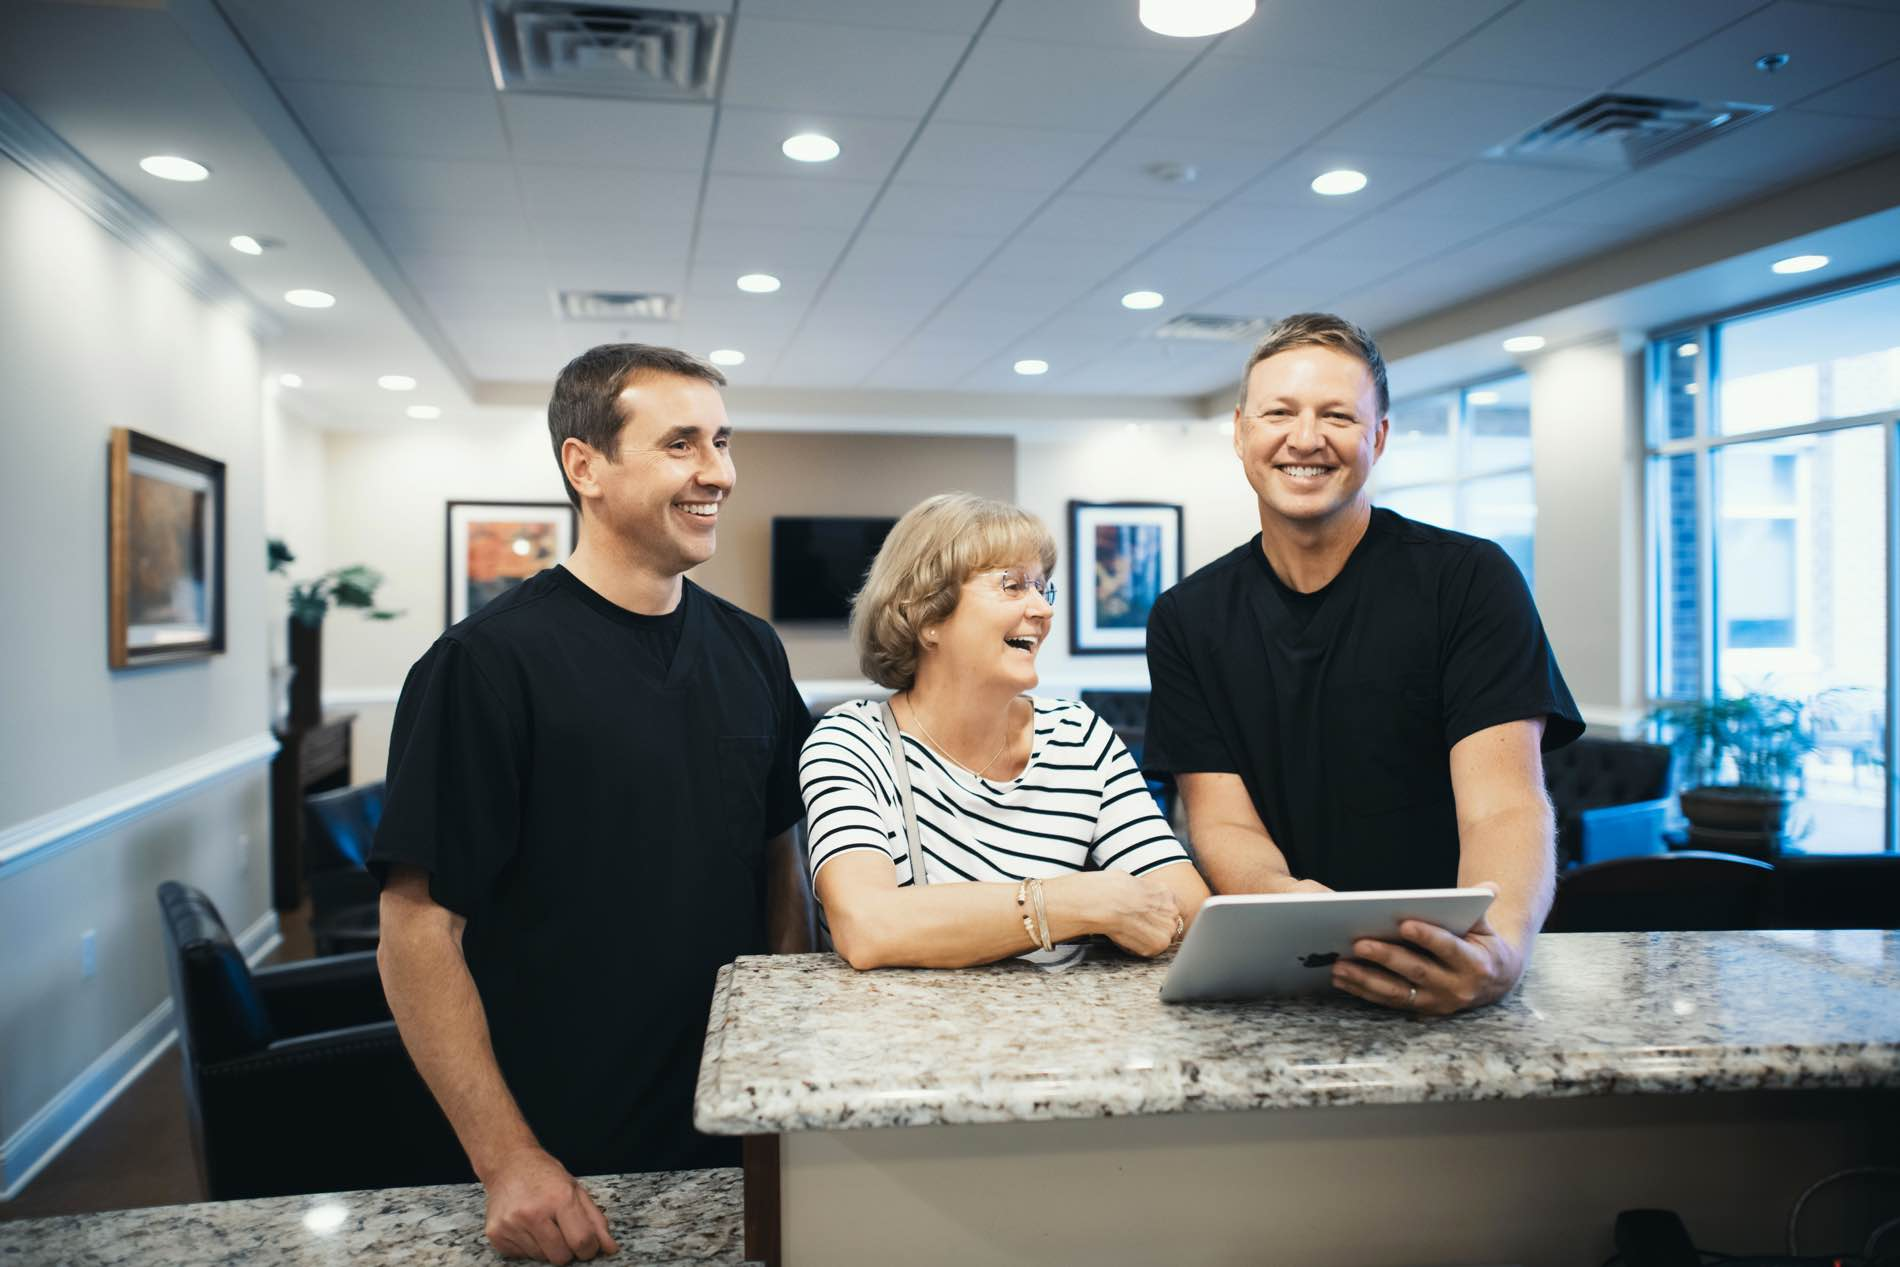 Photo of Dr. Pell & Dr. Bohrer standing with a patient